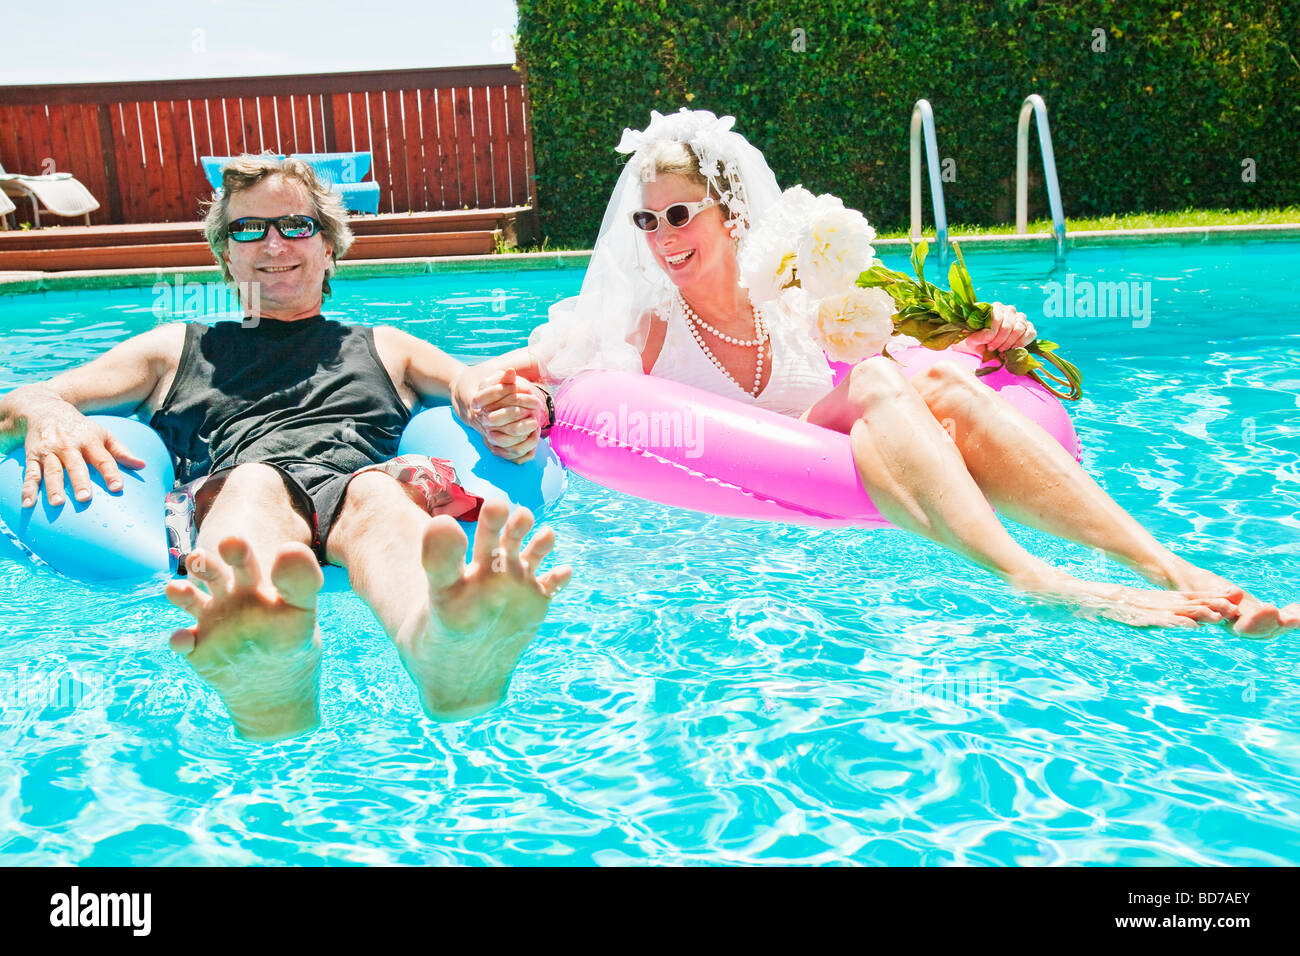 Bride and groom in swimming pool Stock Photo: 25362819 - Alamy